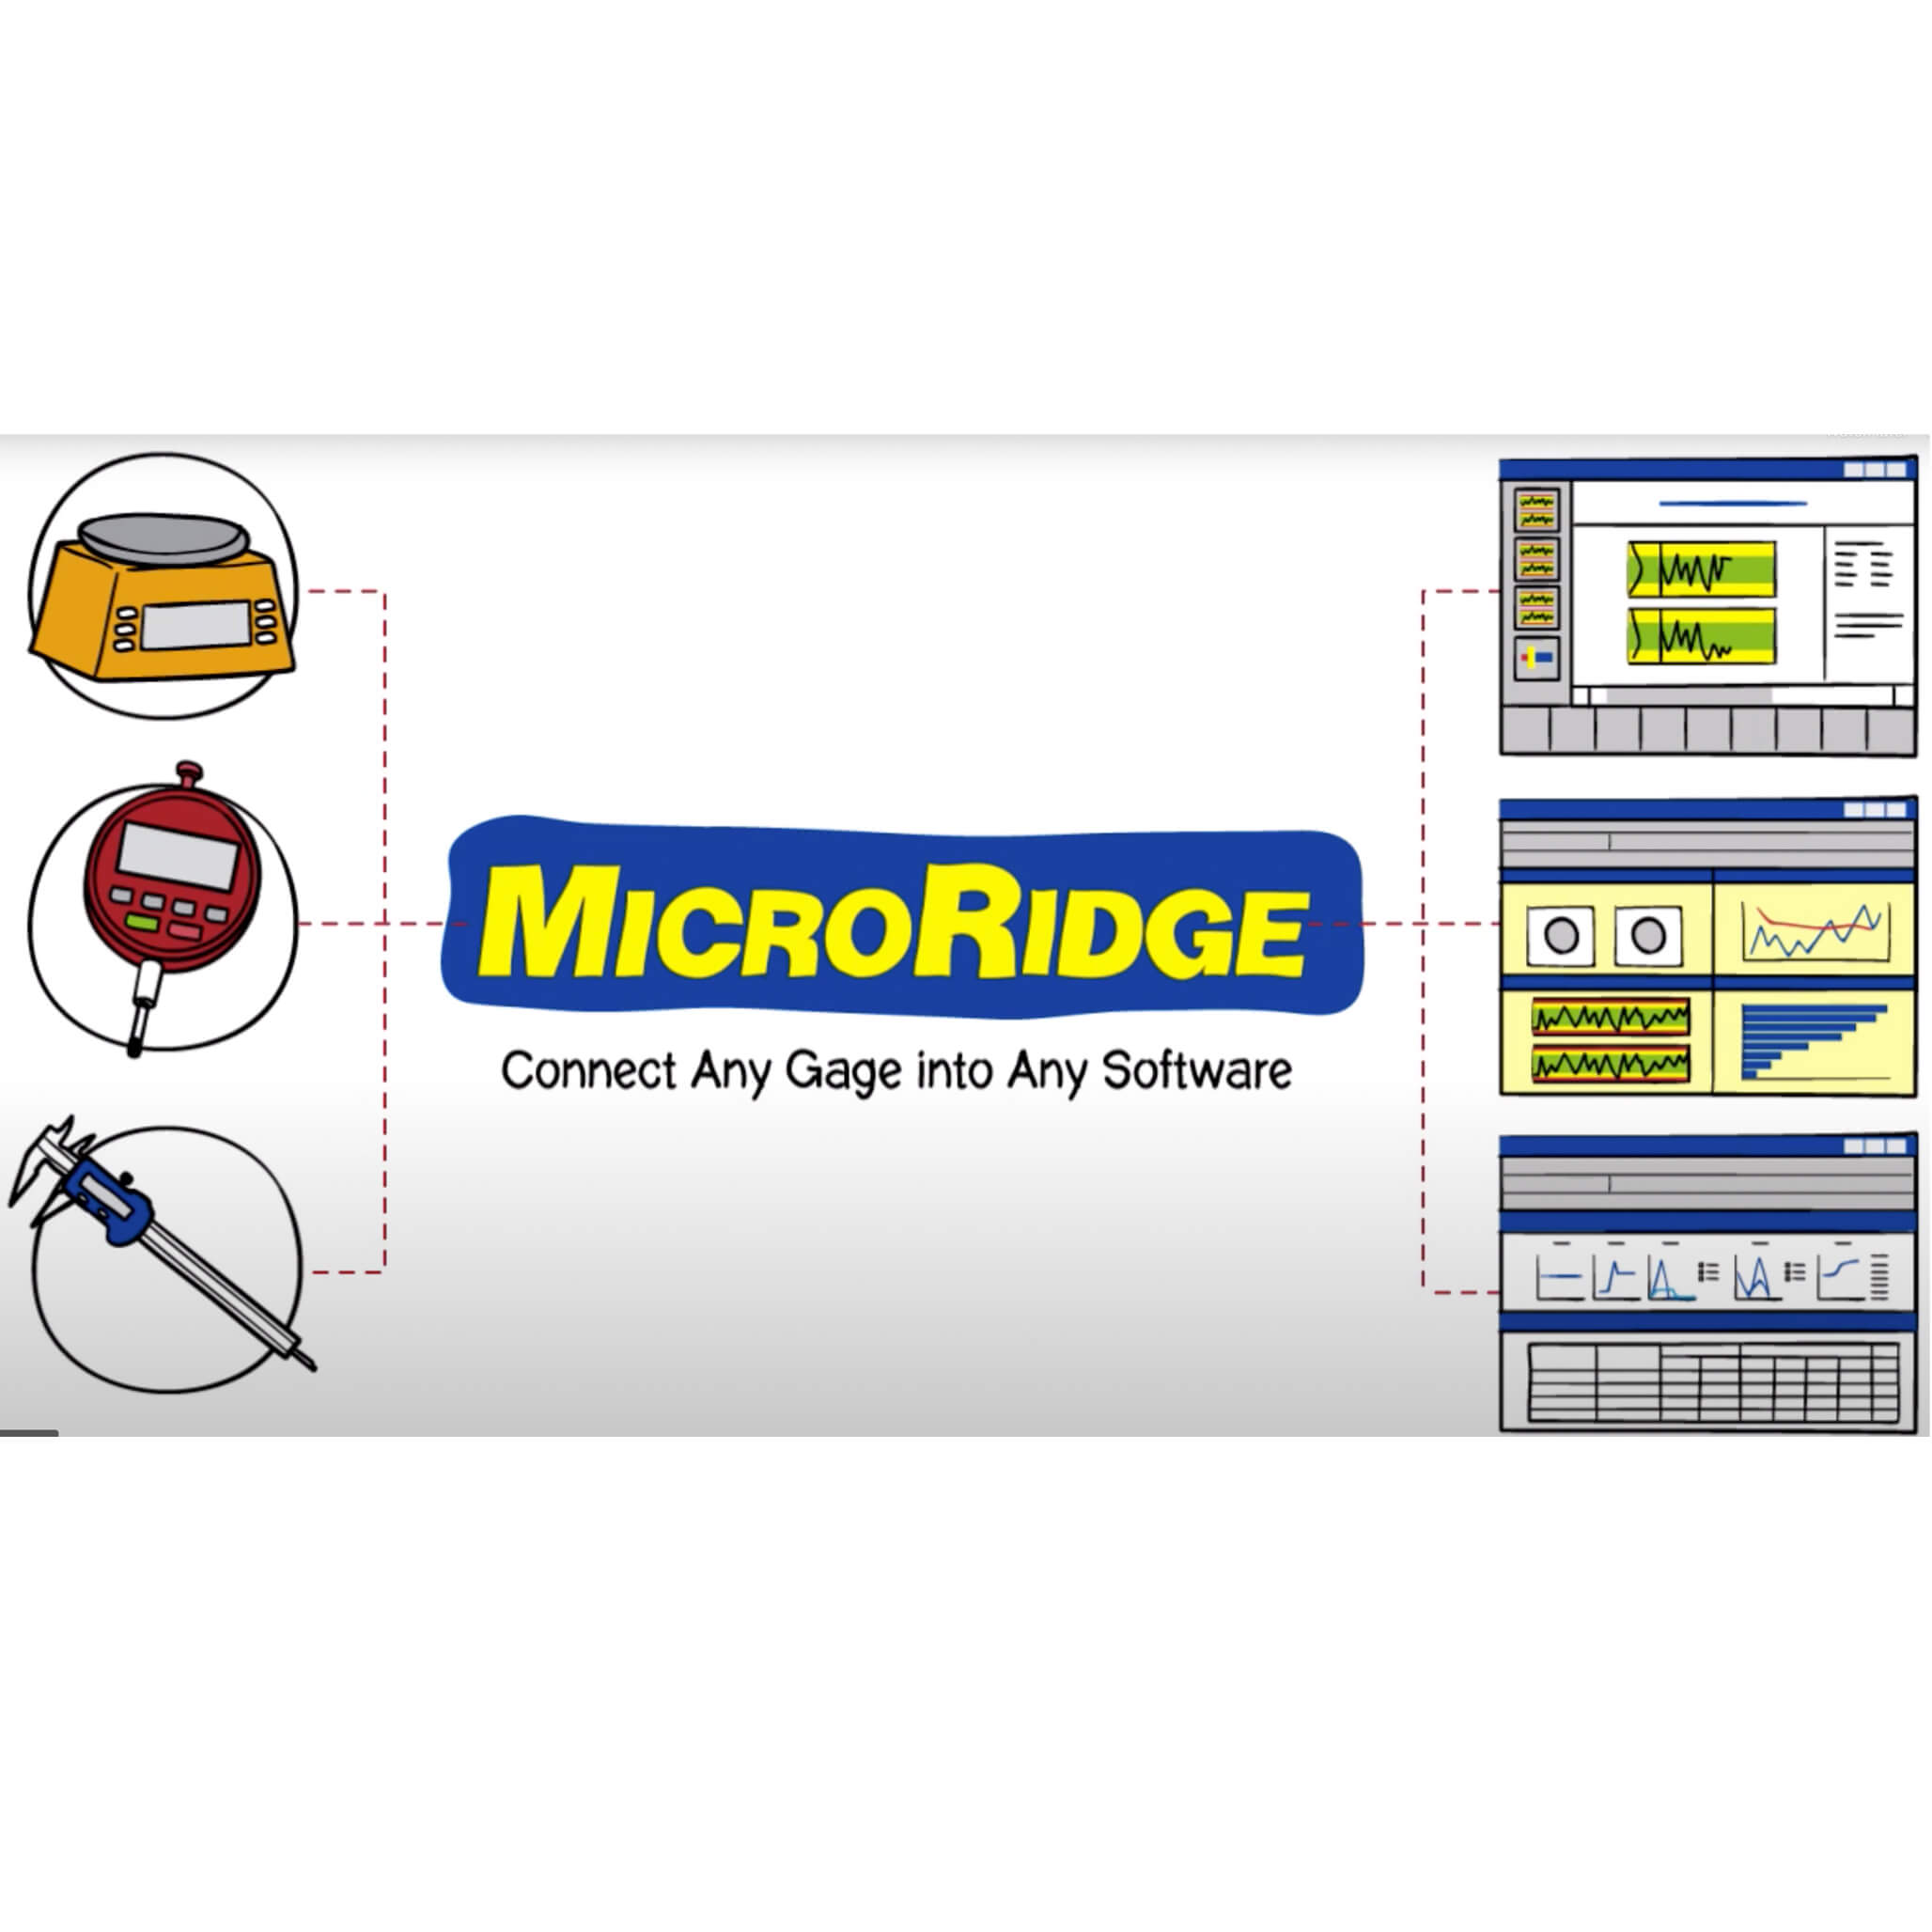 microridge linking gauges to any software